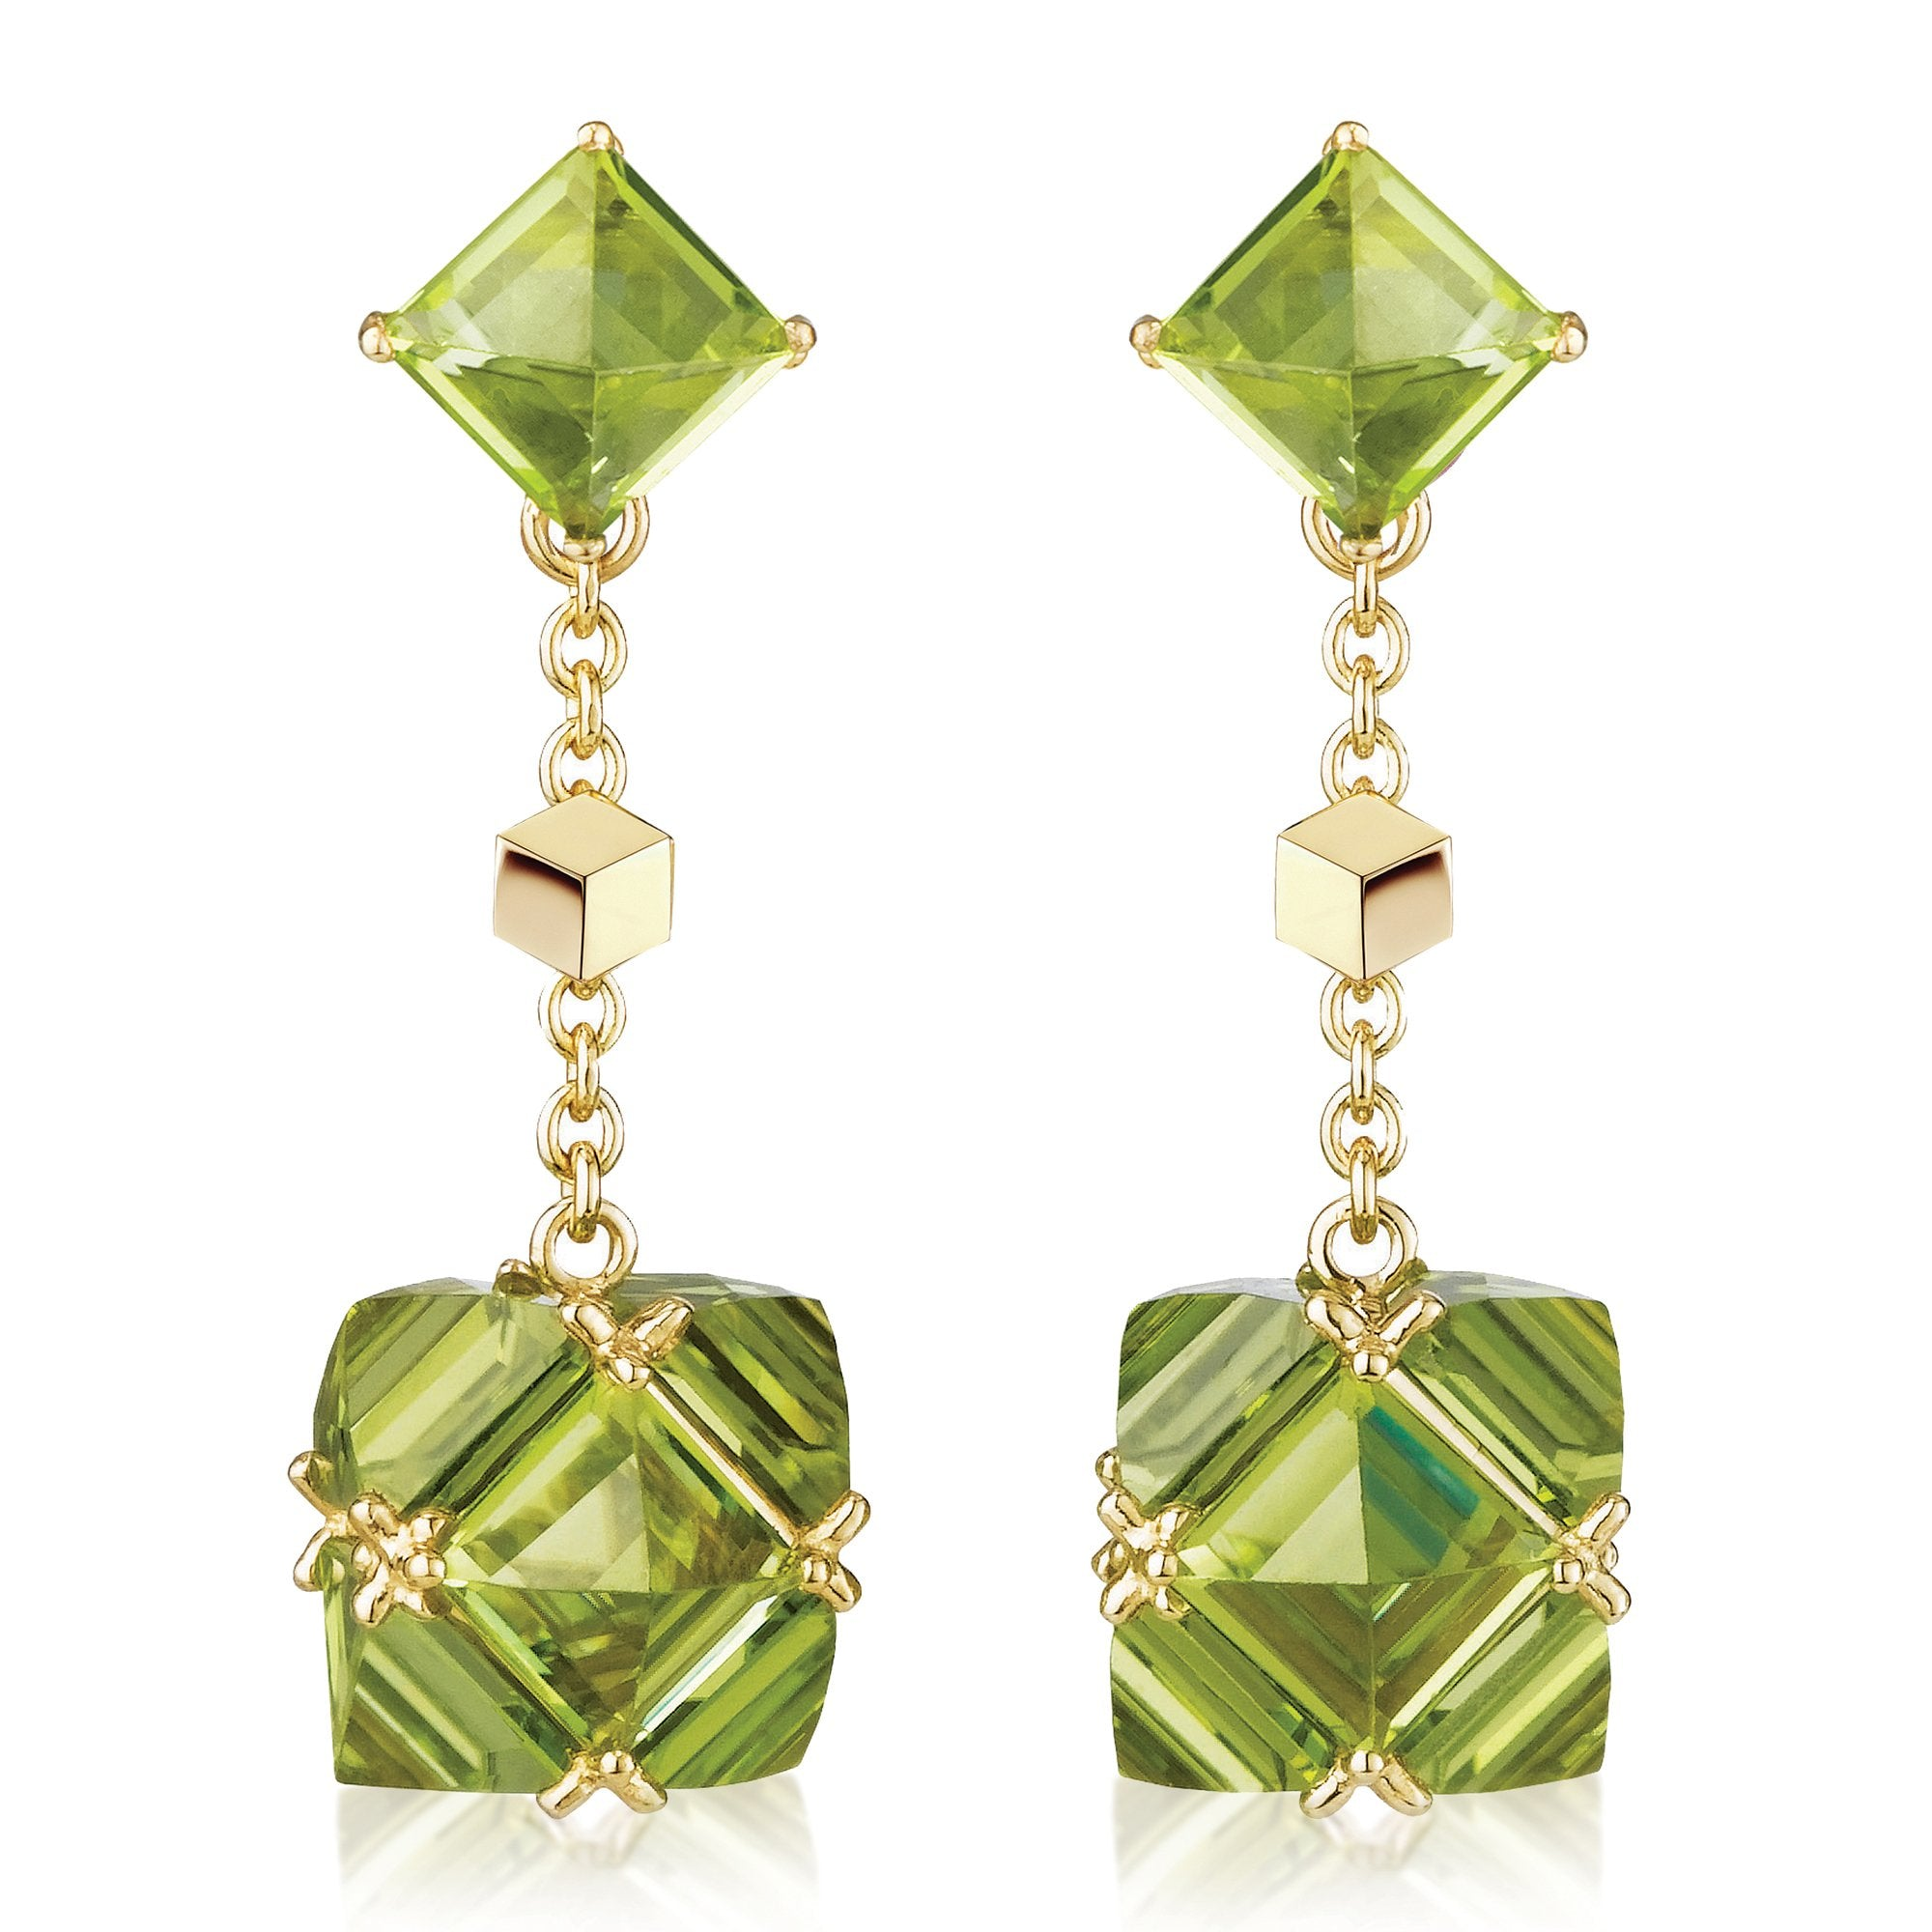 Peridot 'Very PC'® Earrings, Petite - Paolo Costagli - 1